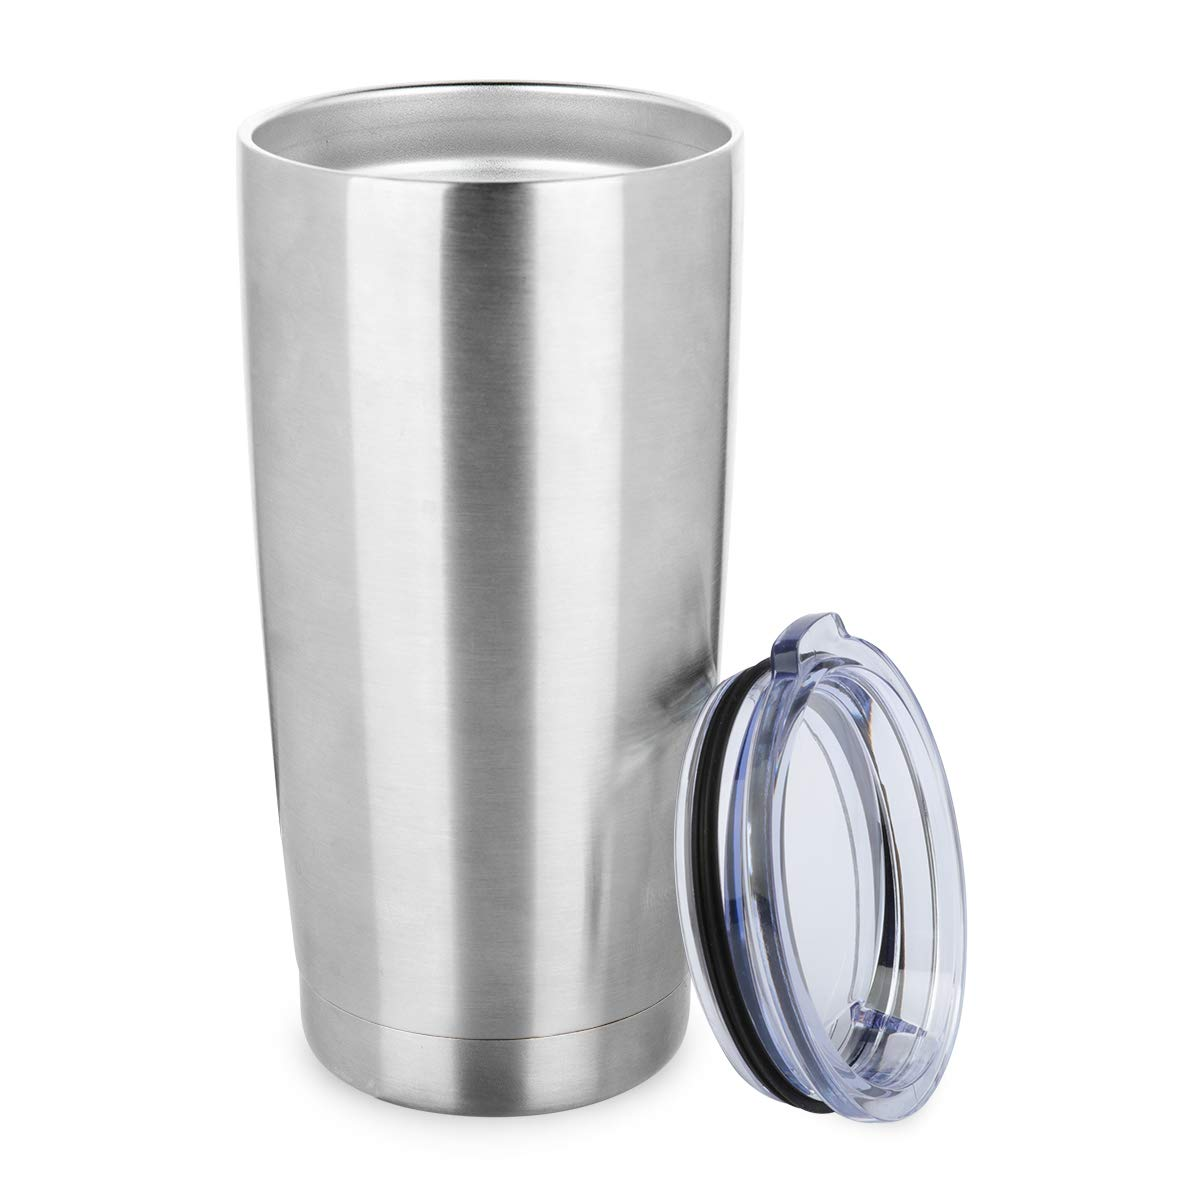 ONEB 20 oz Double Wall Vacuum Insulated Coffee Cup - 18/8 Stainless Steel Travel Mug for Cold & Hot Drinks (Silver 8pack)) by ONEB (Image #5)